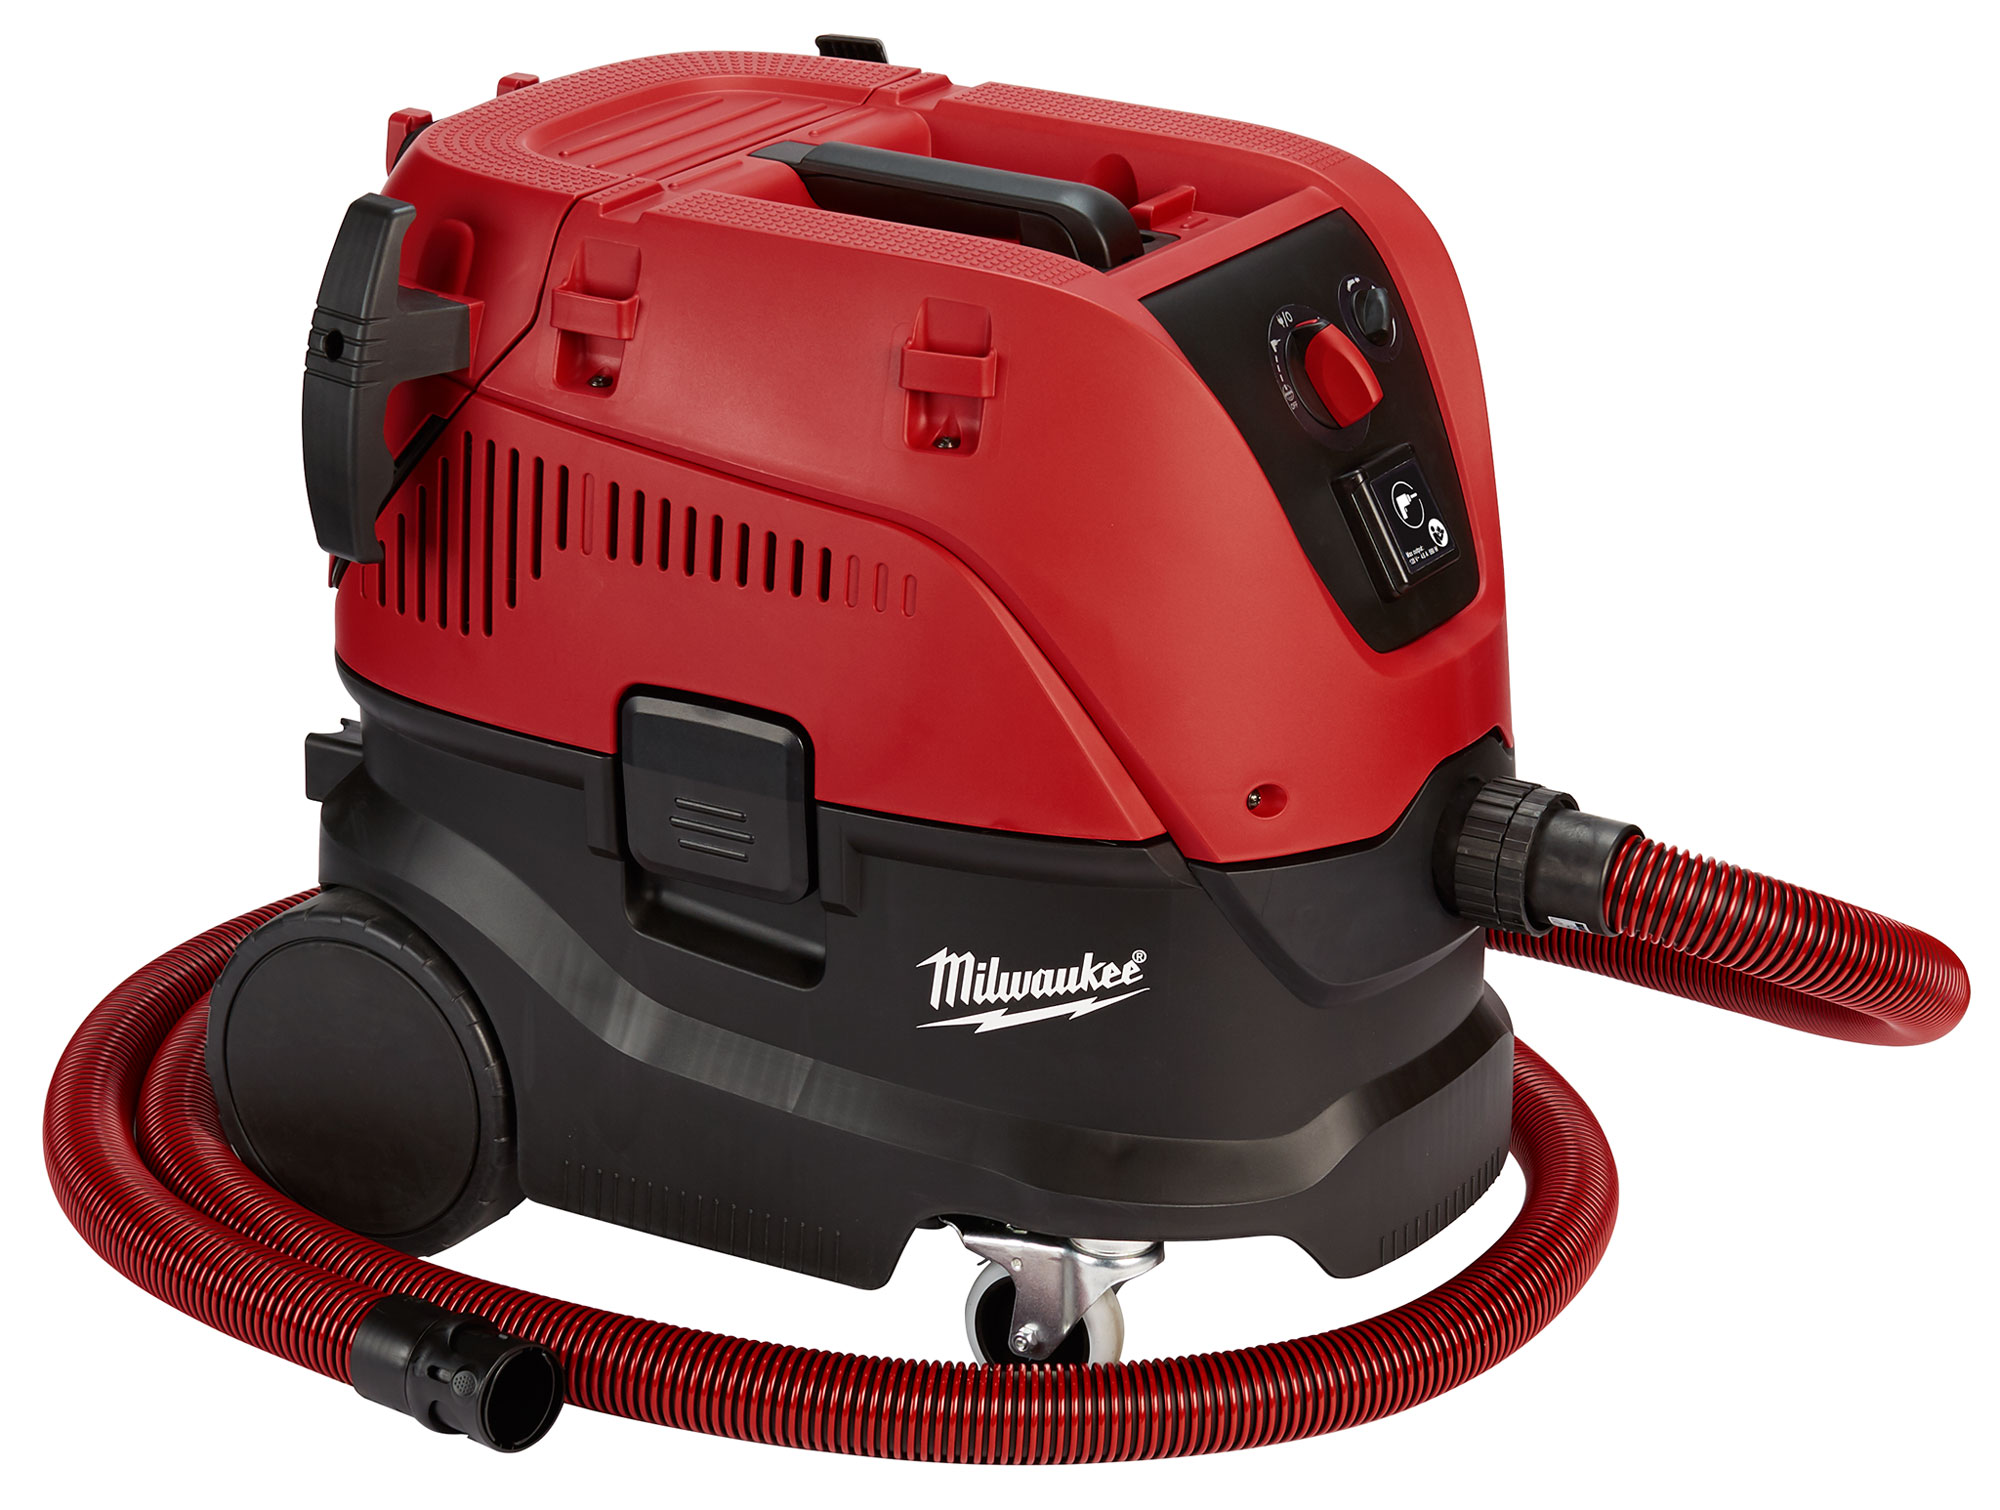 Milwaukee Dust Extraction Systemmasonry Construction Vacuums And Dust Collection